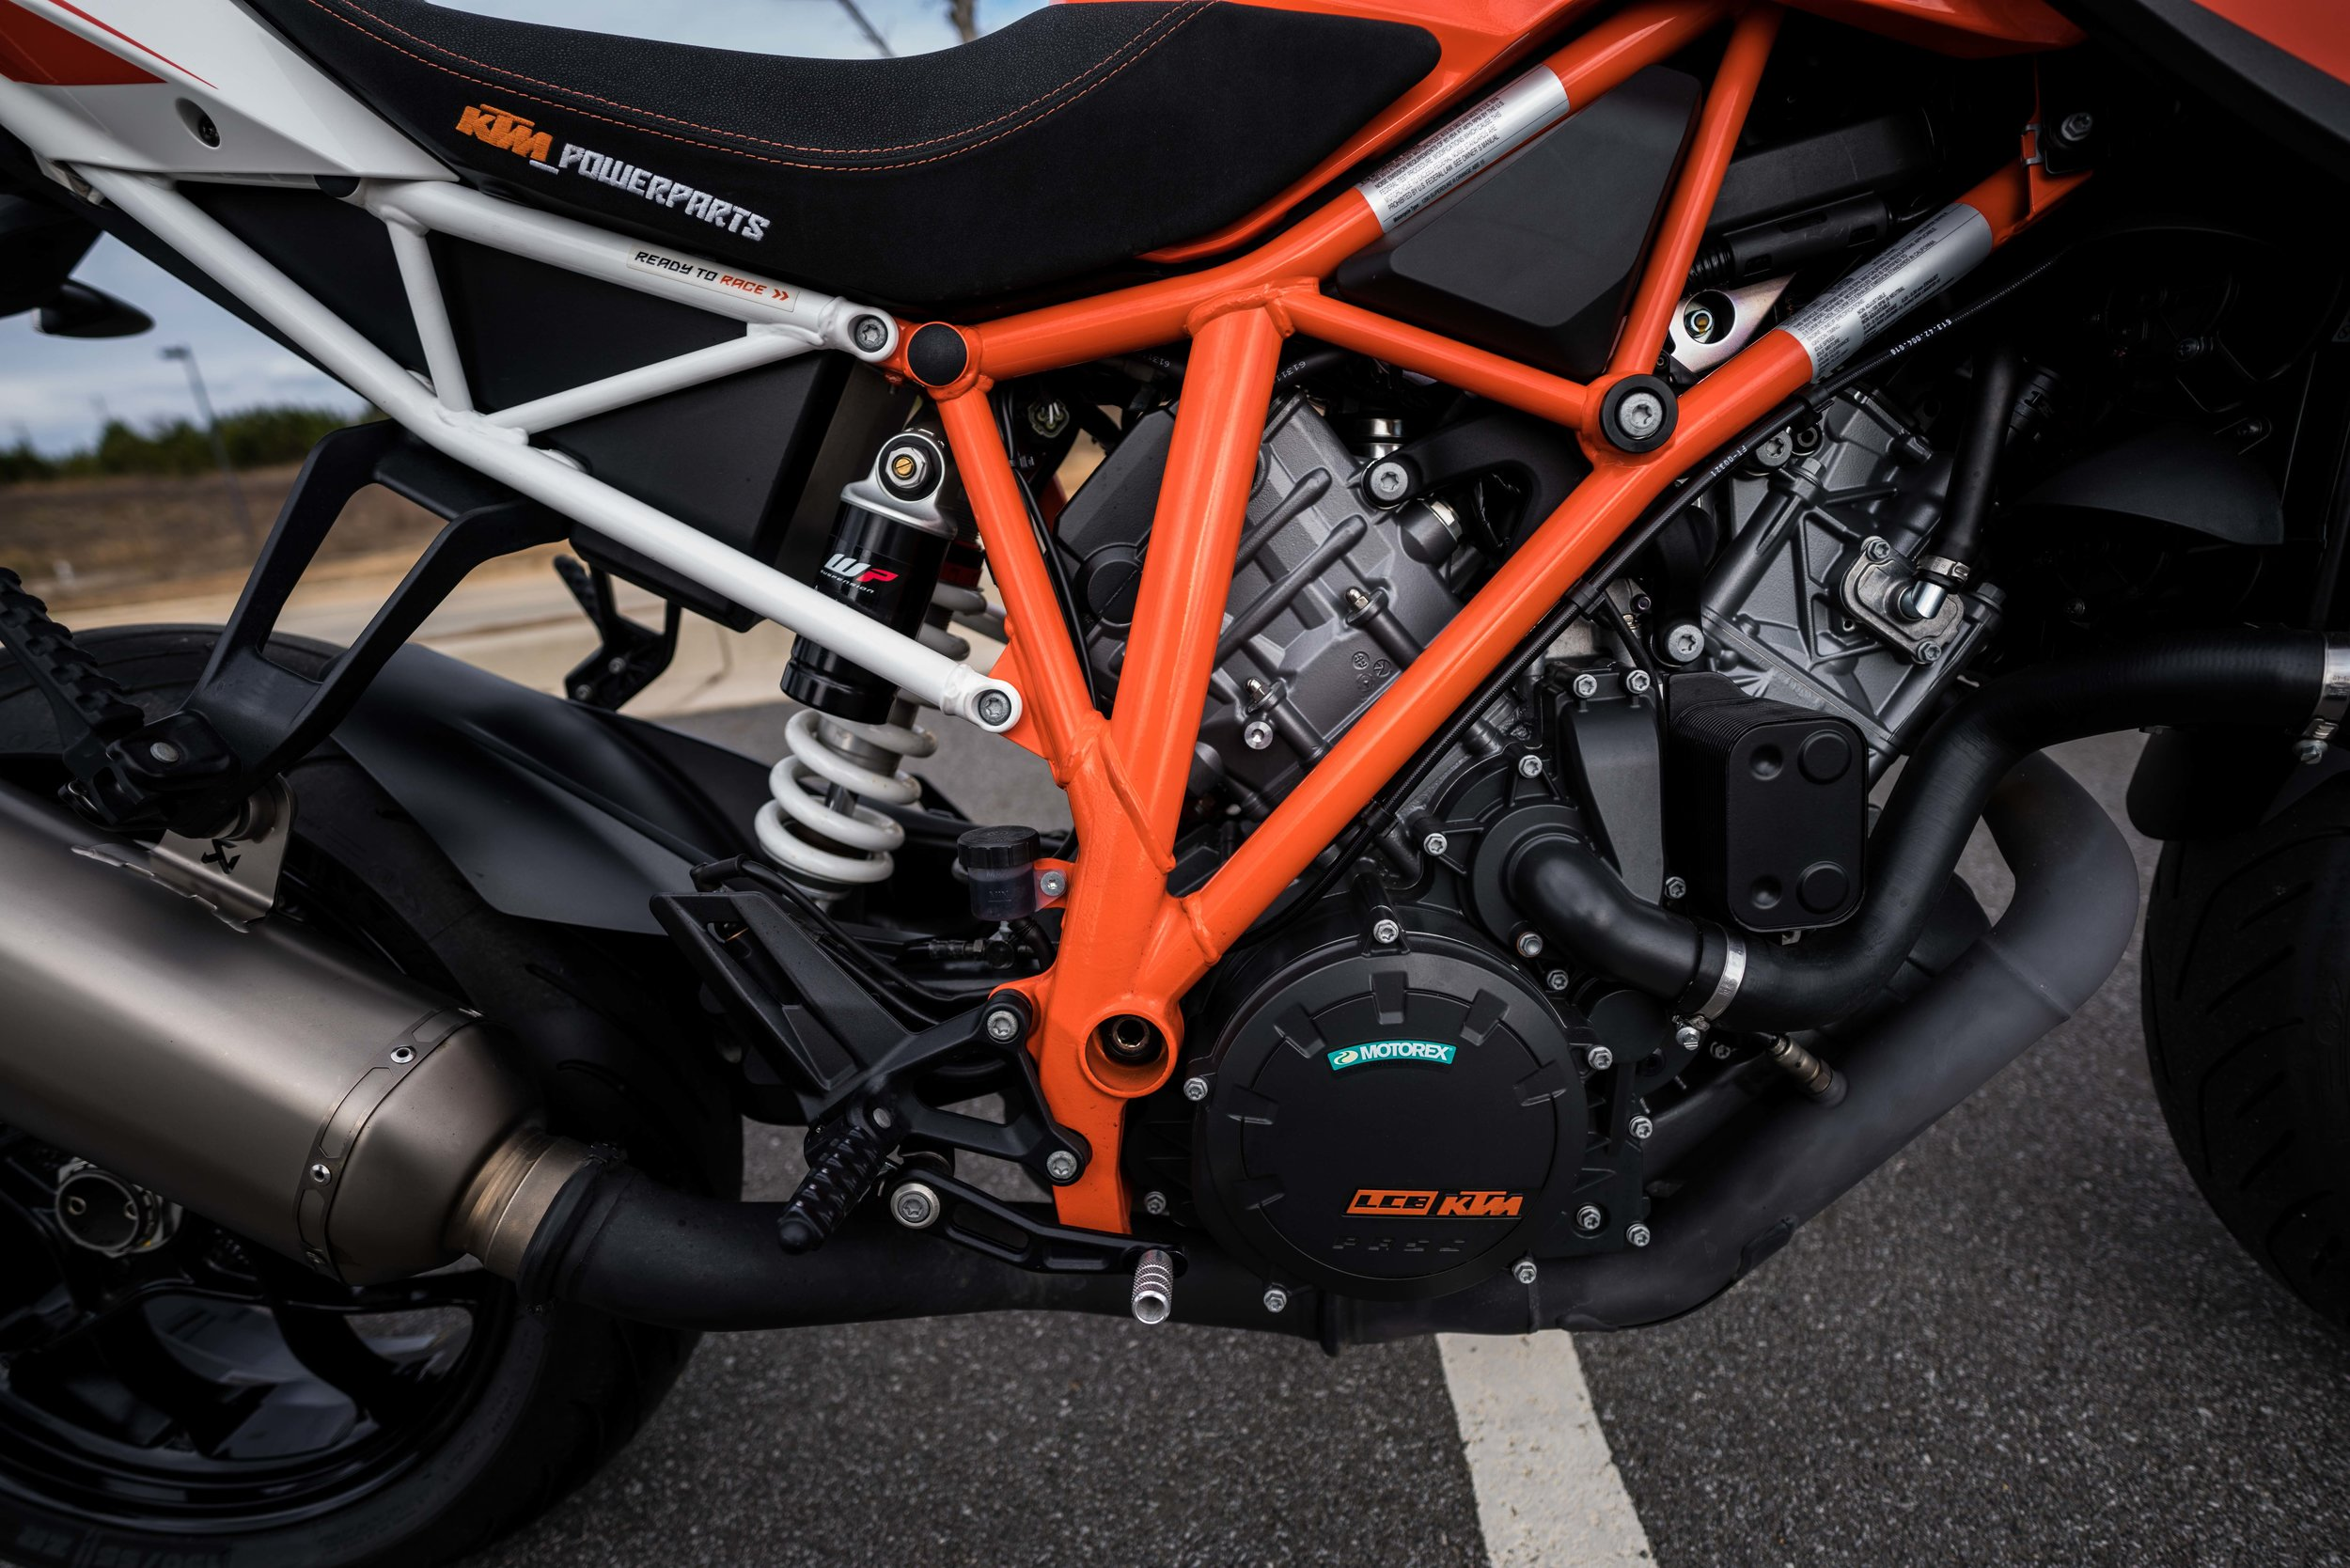 Superduke_FirstRide-11.jpg